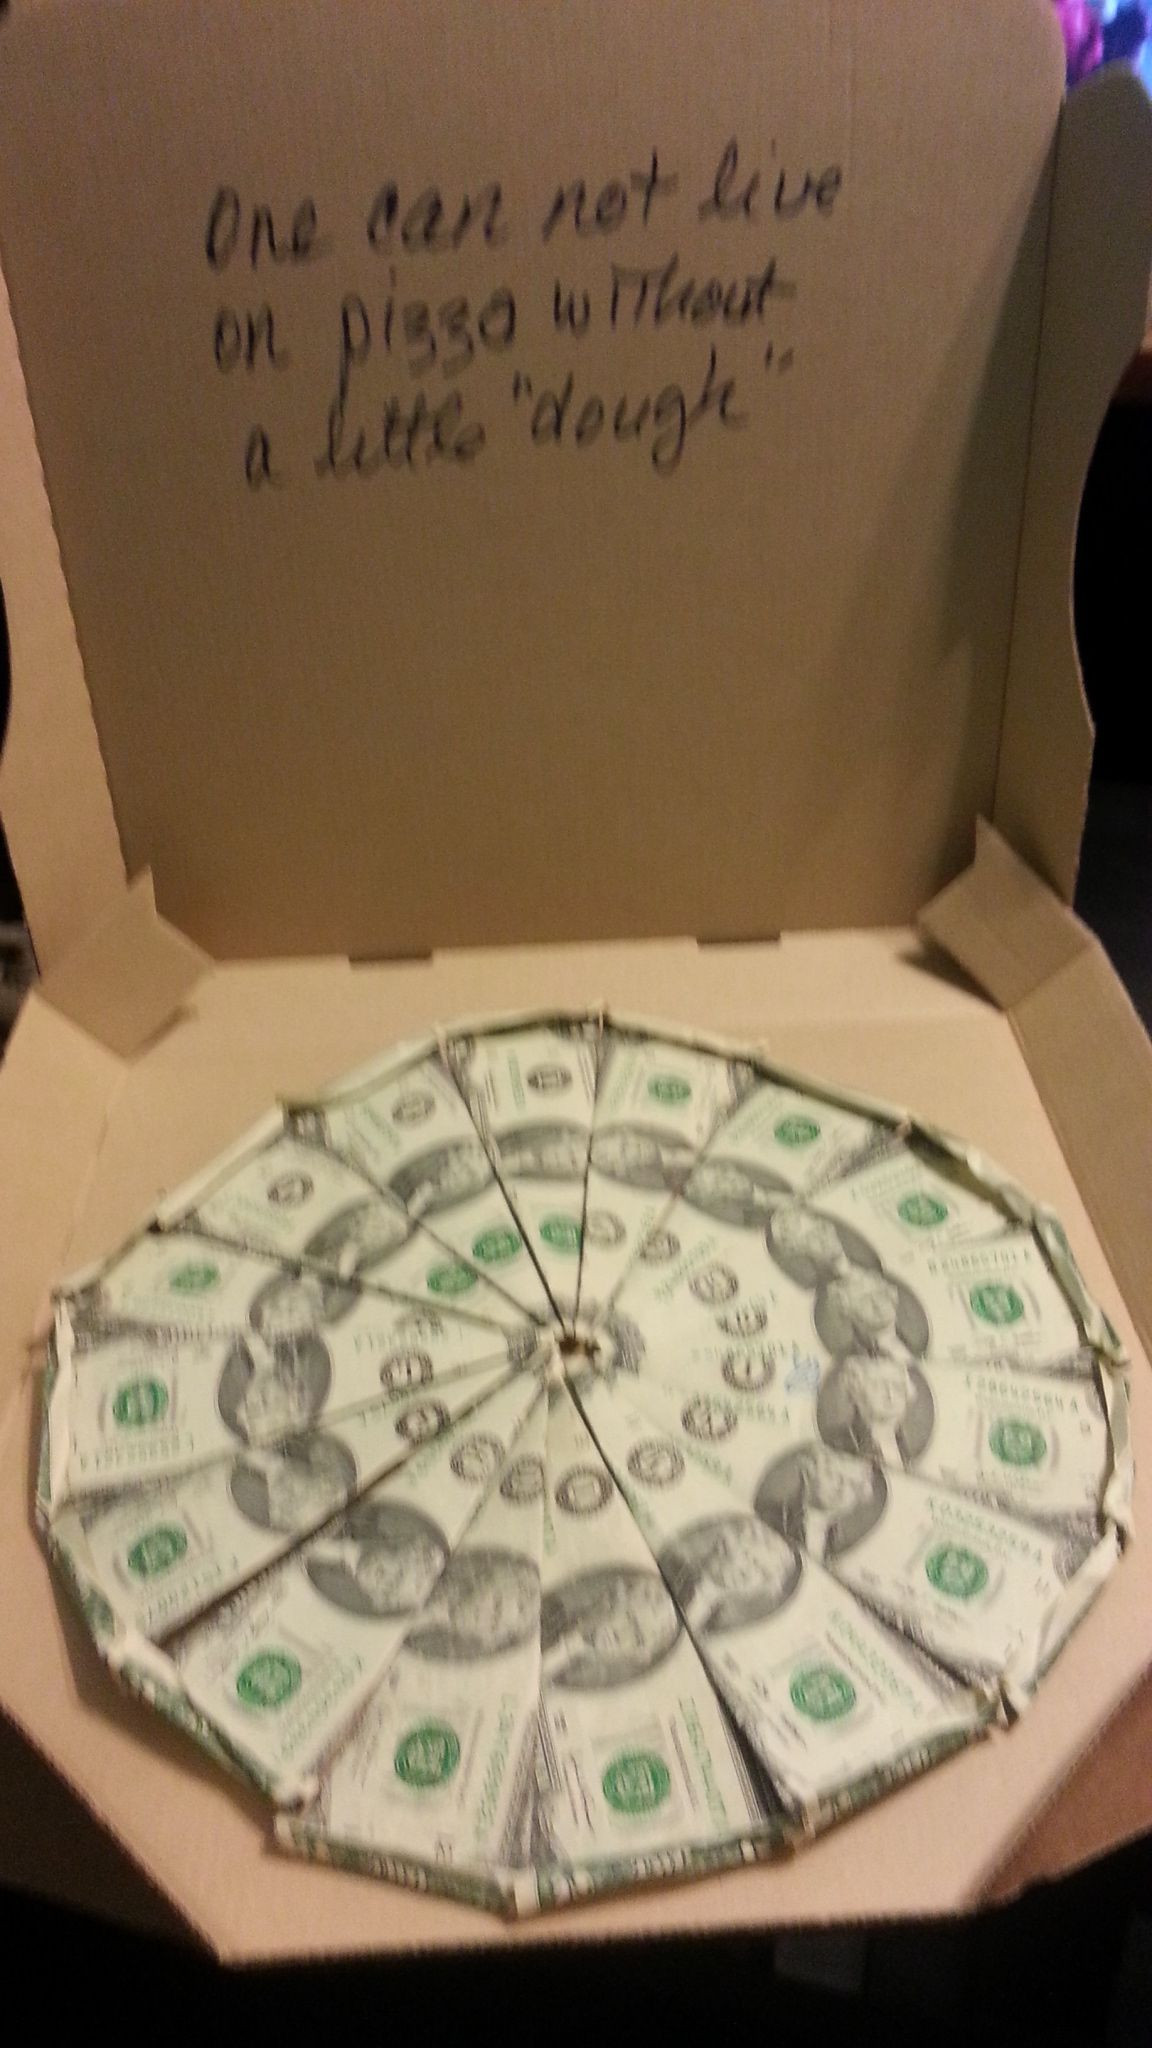 Best ideas about Dollar Bill Gift Ideas . Save or Pin Made with 2 dollar bills and an empty pizza box 16 Now.